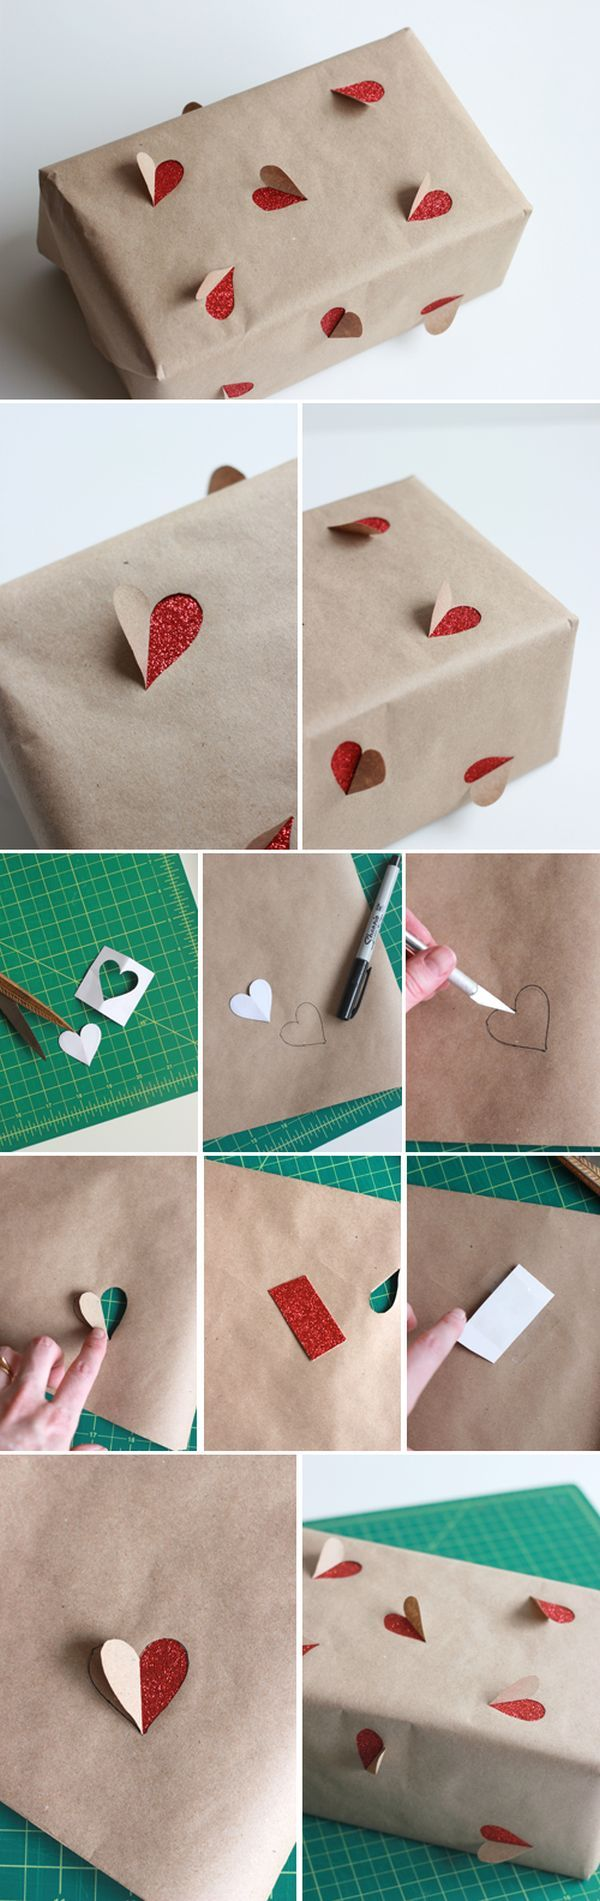 Super cute romantic themed wrapping idea, perfect for Valentine's Day / anniversary / wedding gifts.